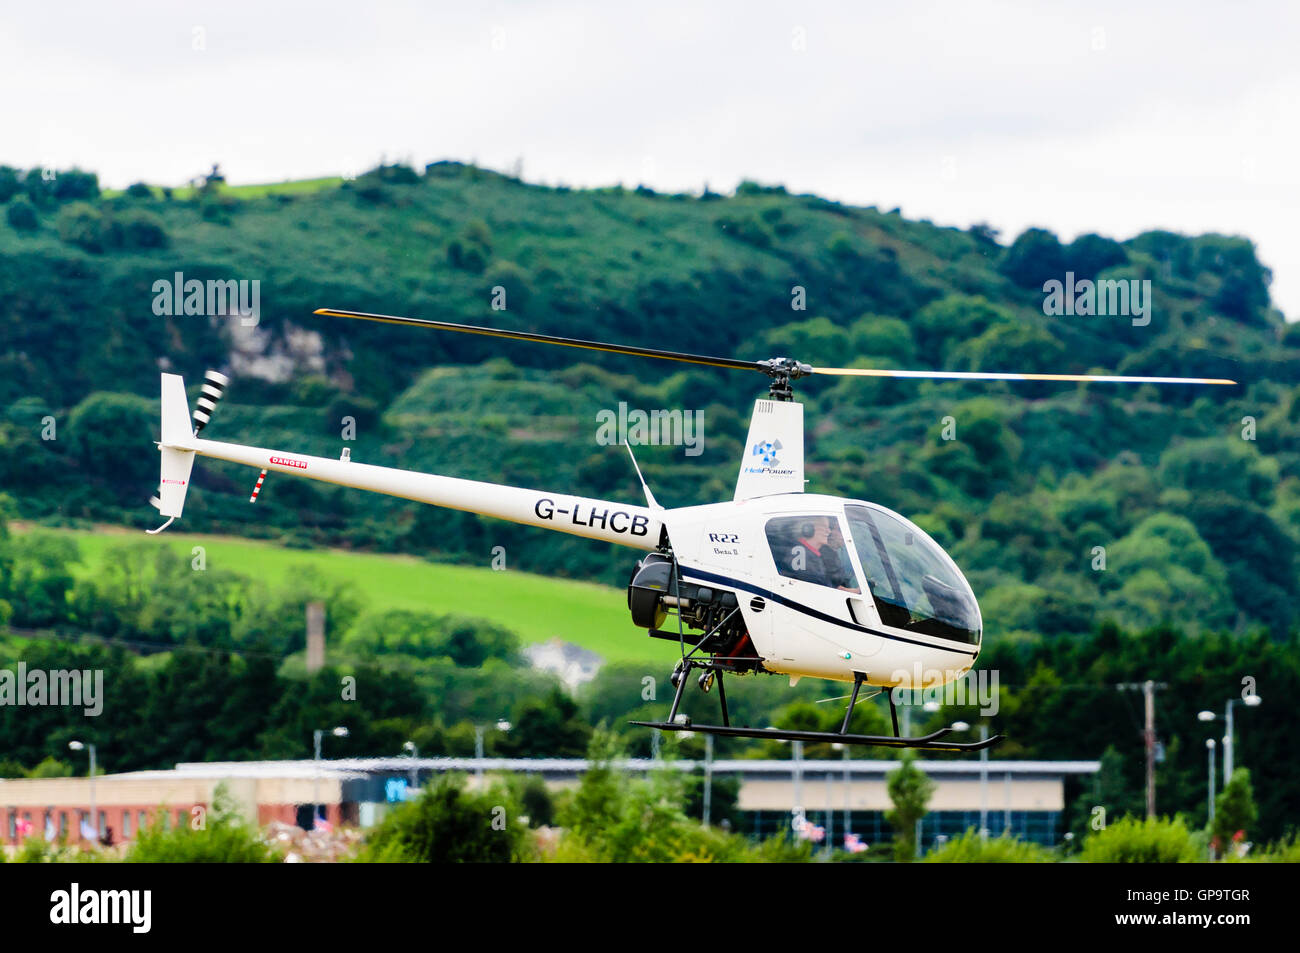 G-LHCB (formerly G-SIVX) Robinson R22 BETA helicopter with a LYCOMING O-360-J2A engine, owned by London Helicopter - Stock Image